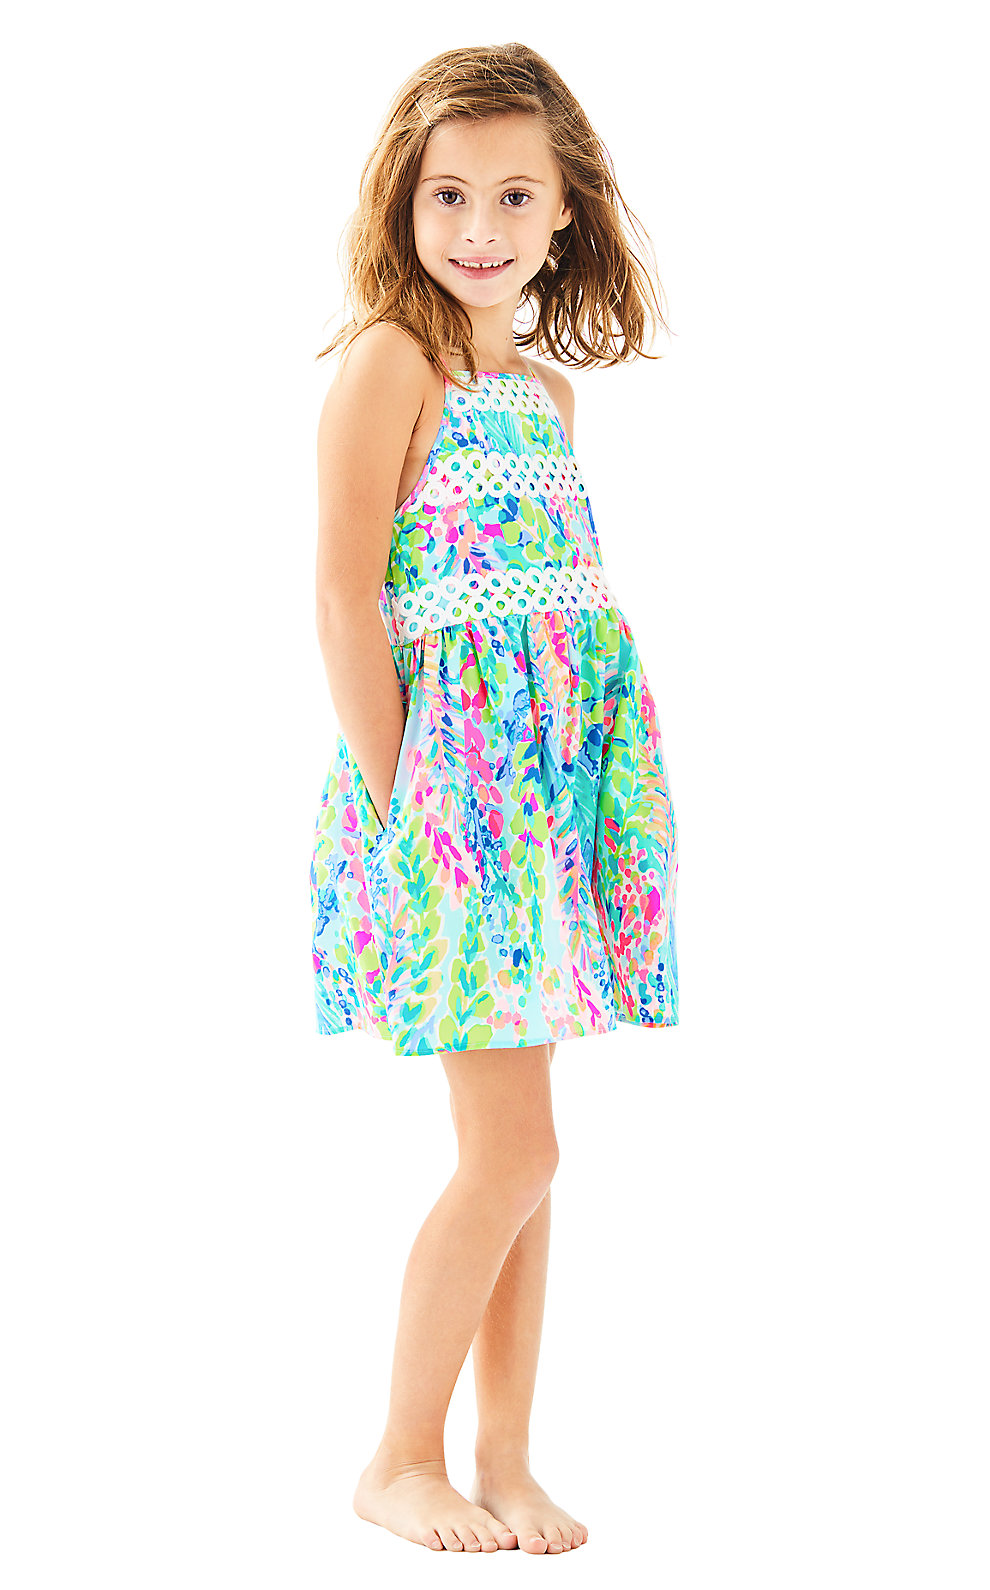 Lilly Pulitzer Lilly Pulitzer Elize Dress